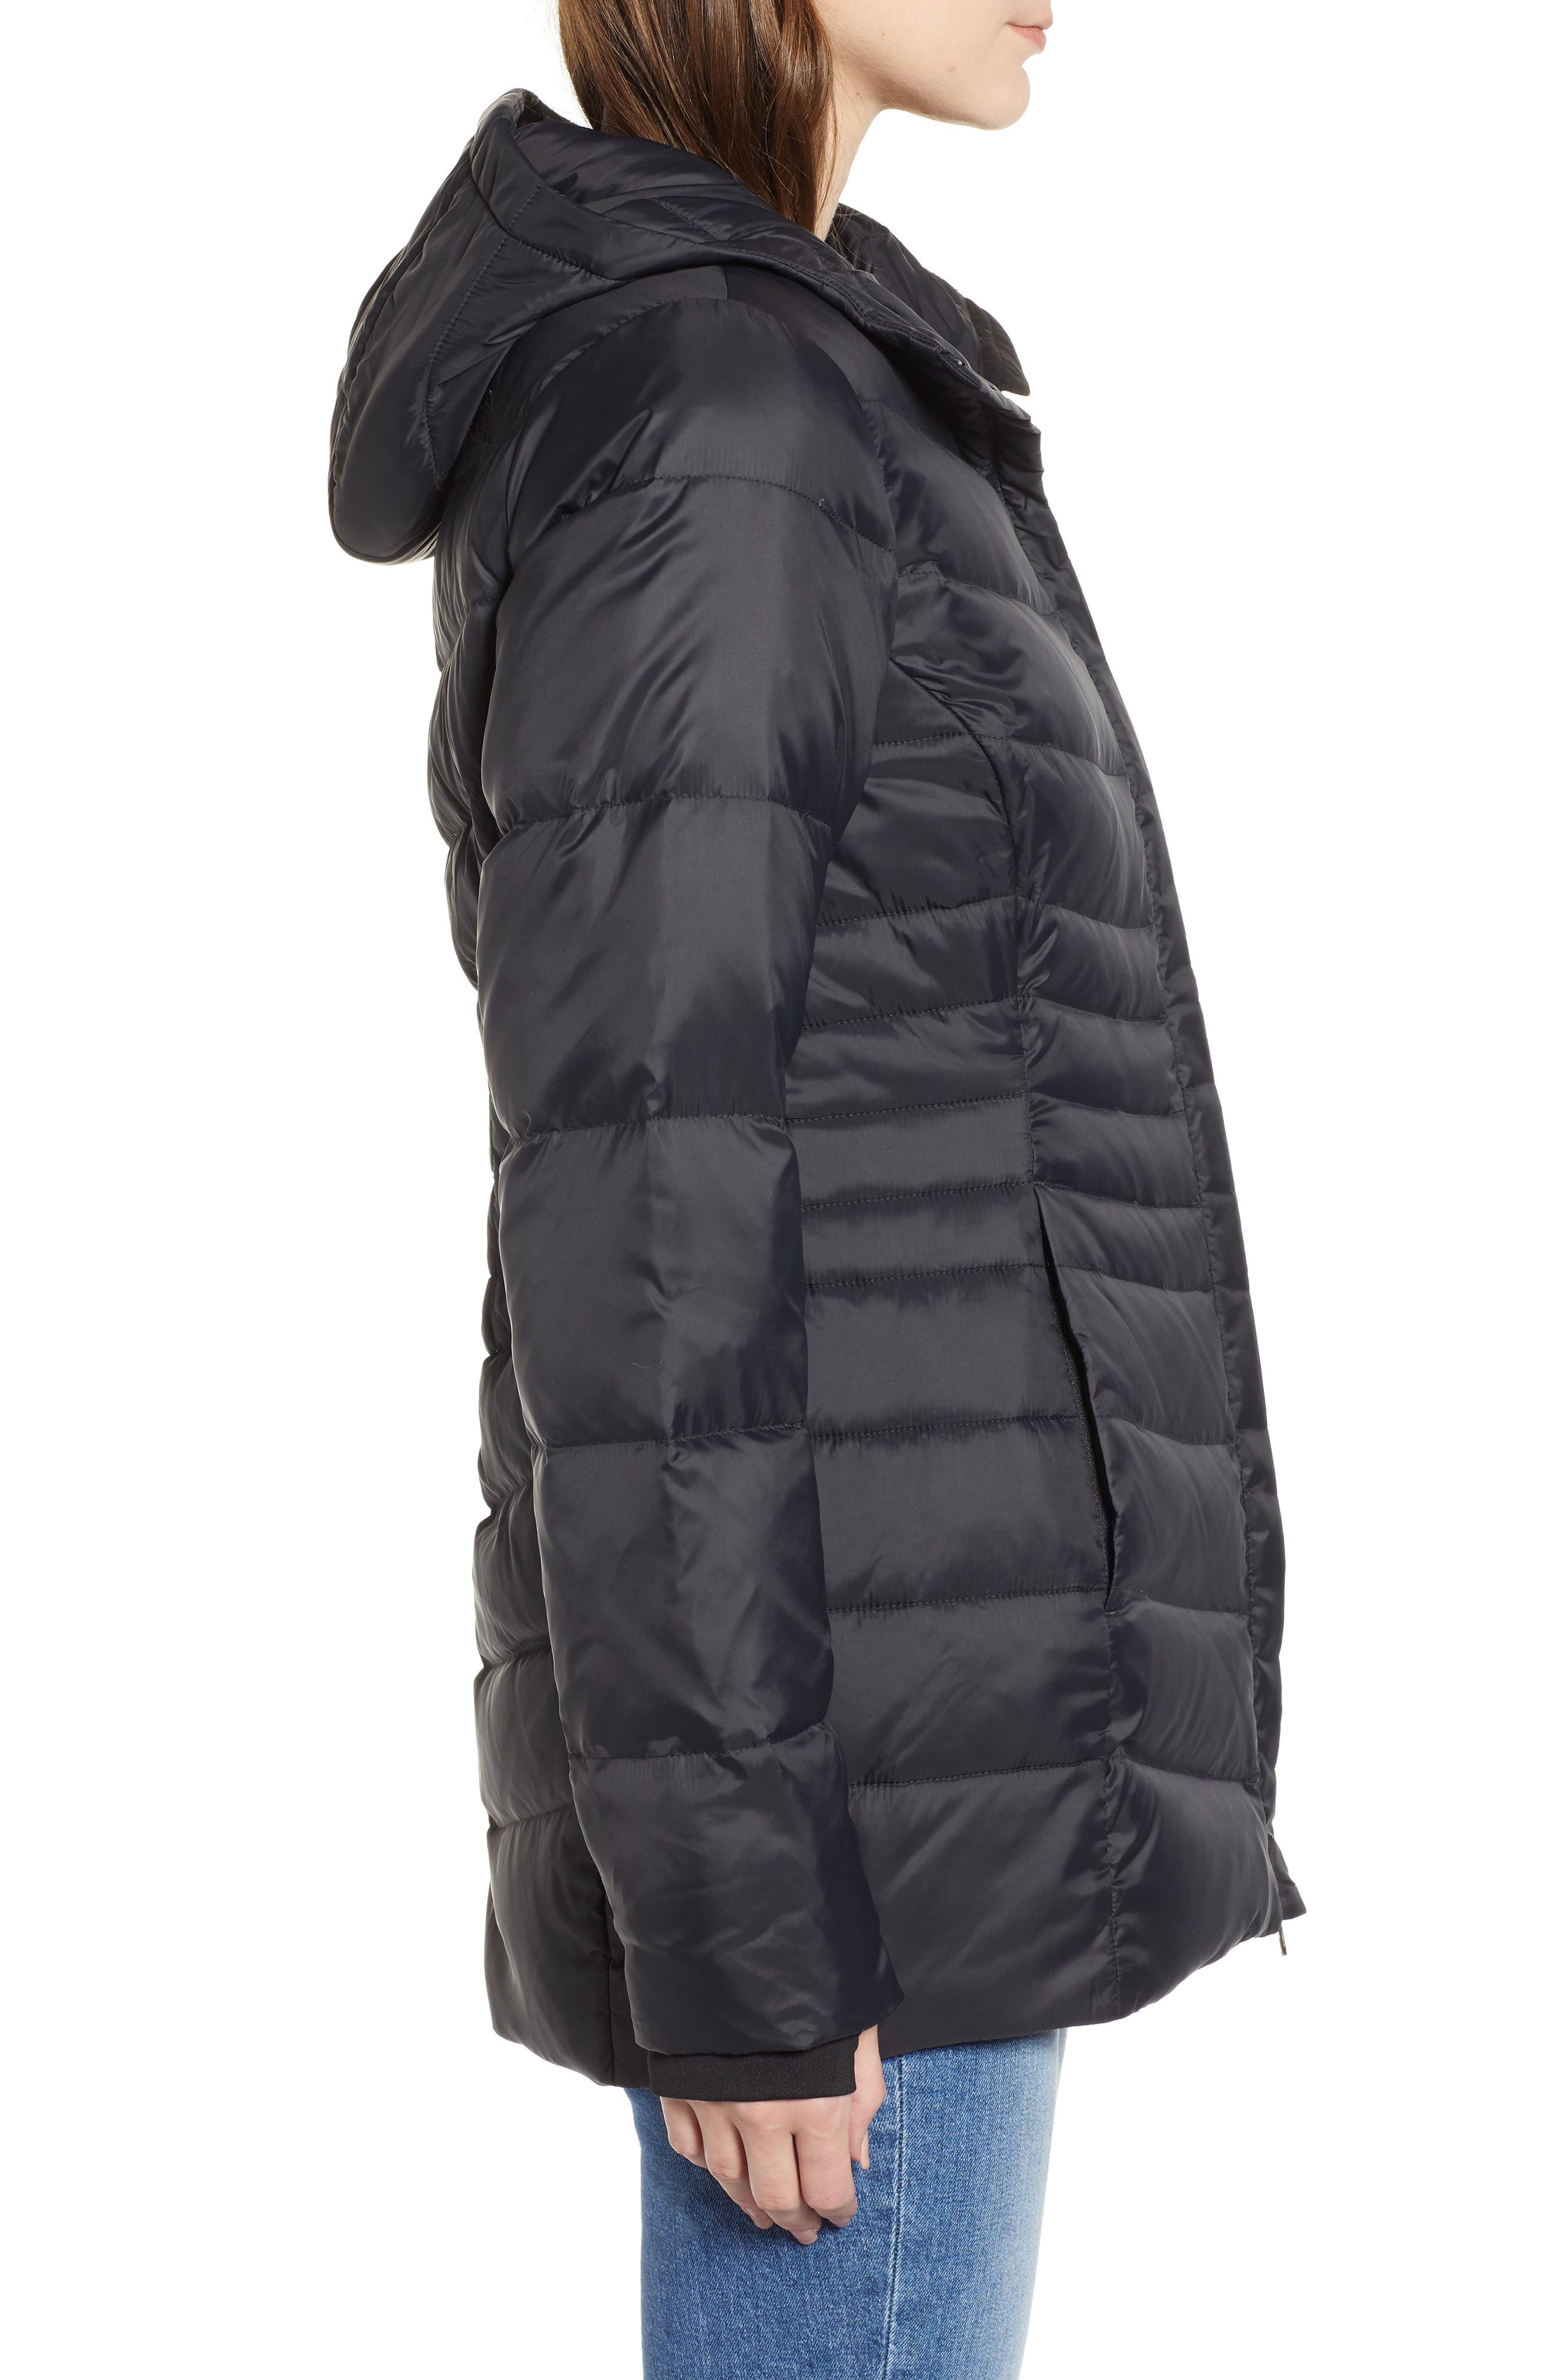 THE NORTH FACE, Aconcagua II 550 Fill Power Down Parka, Alternate thumbnail 3, color, 001